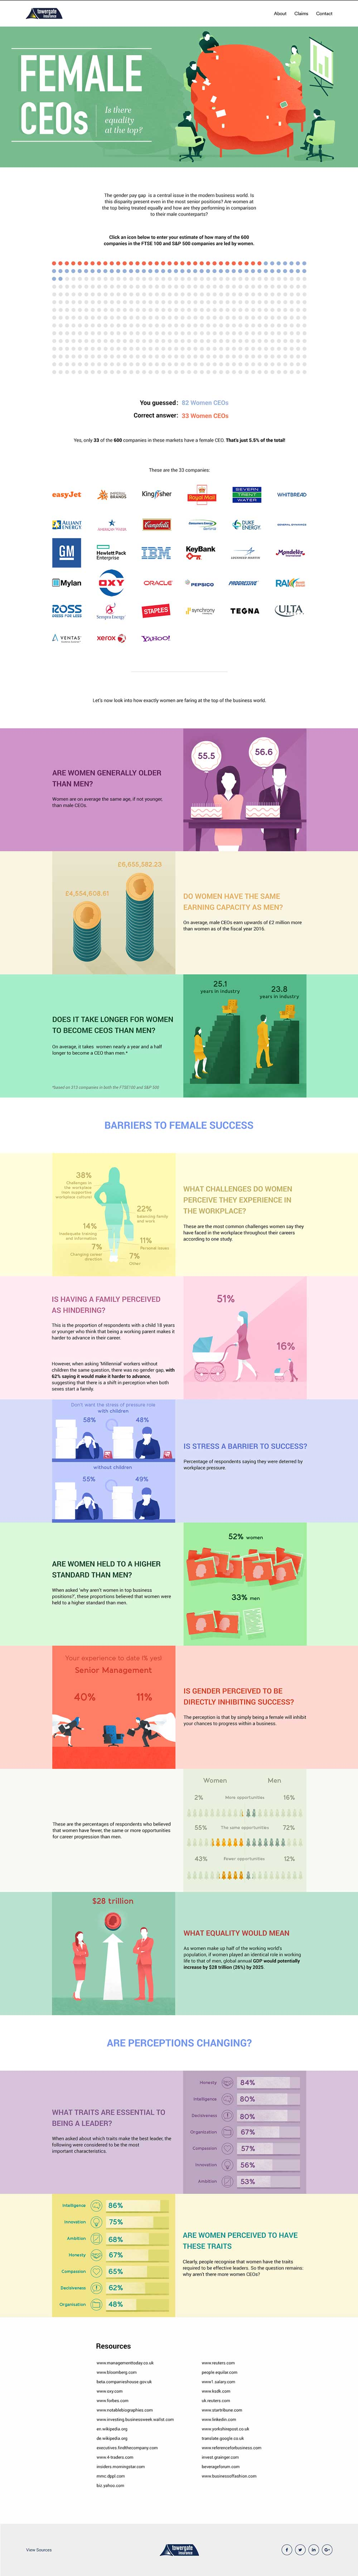 Female CEOs Is There Equality infographic